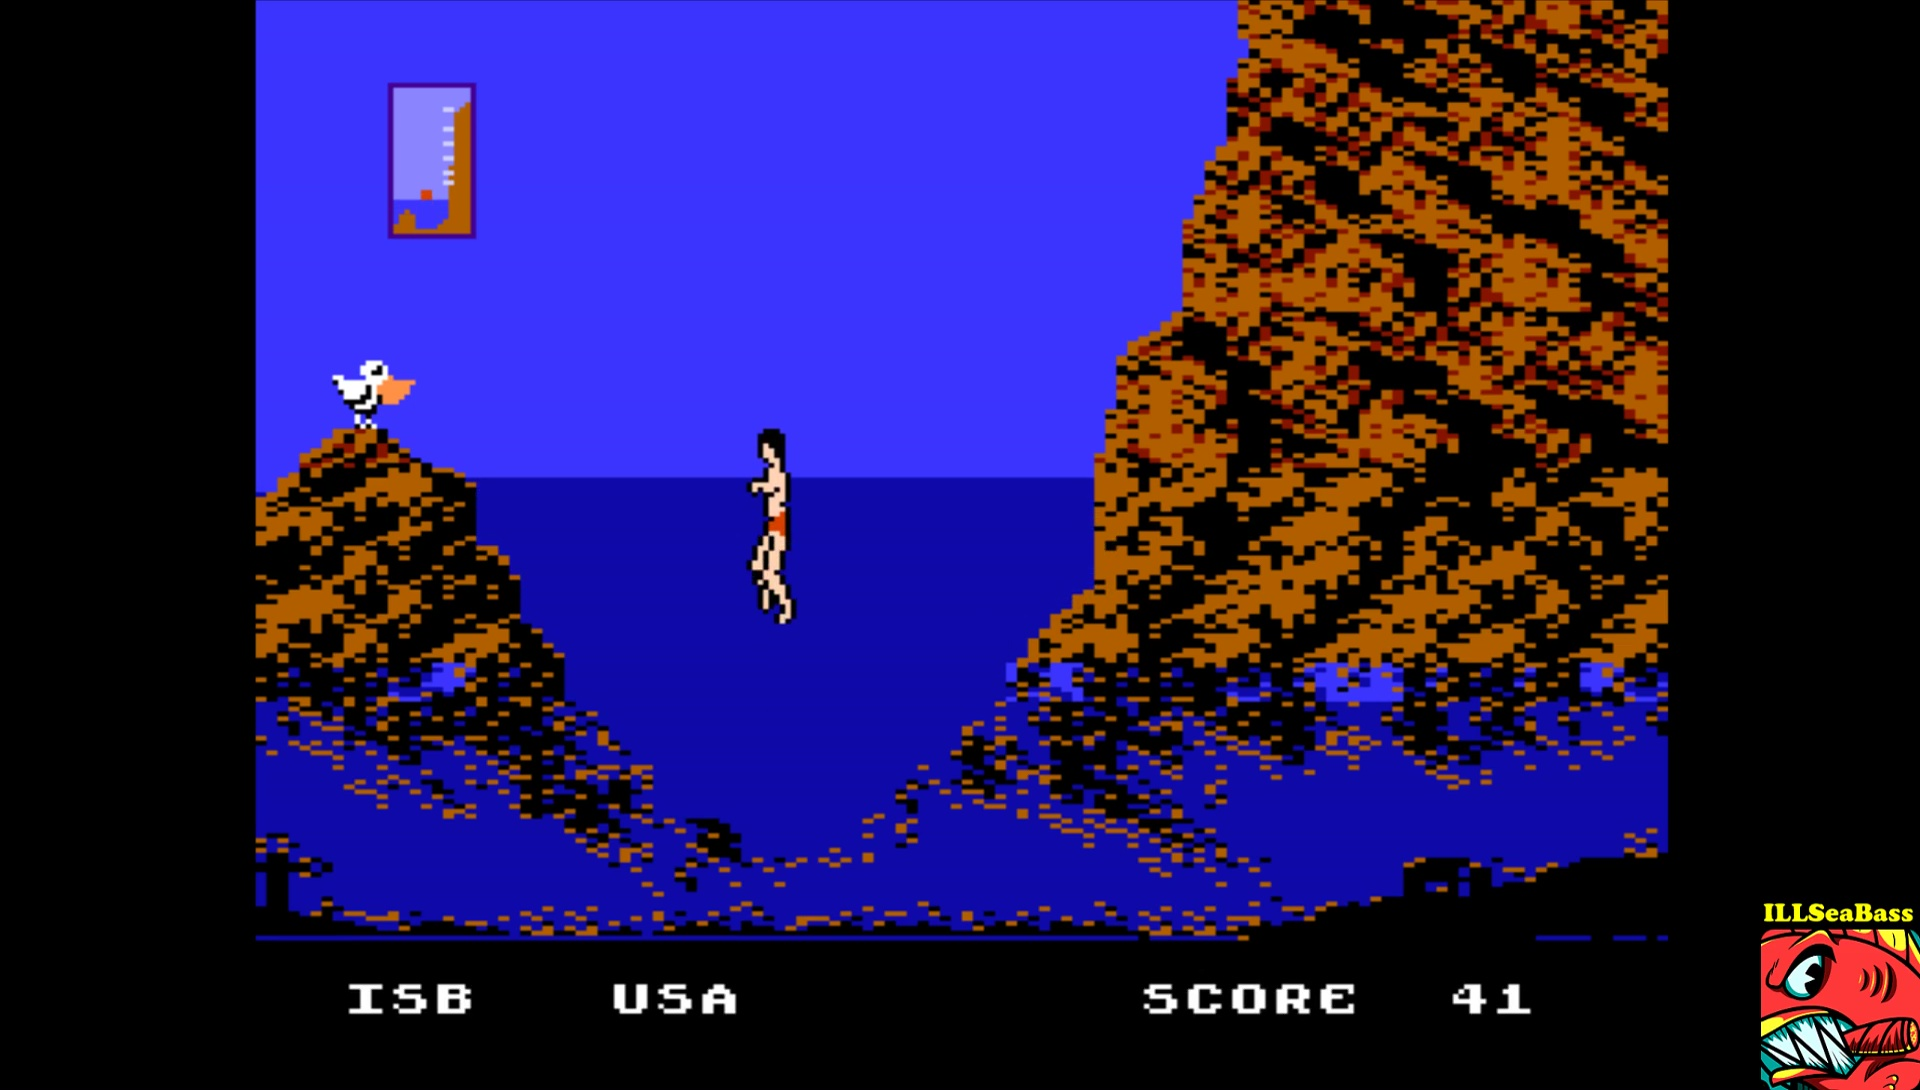 ILLSeaBass: World Games: Cliff Diving (NES/Famicom Emulated) 41 points on 2017-04-27 18:35:31